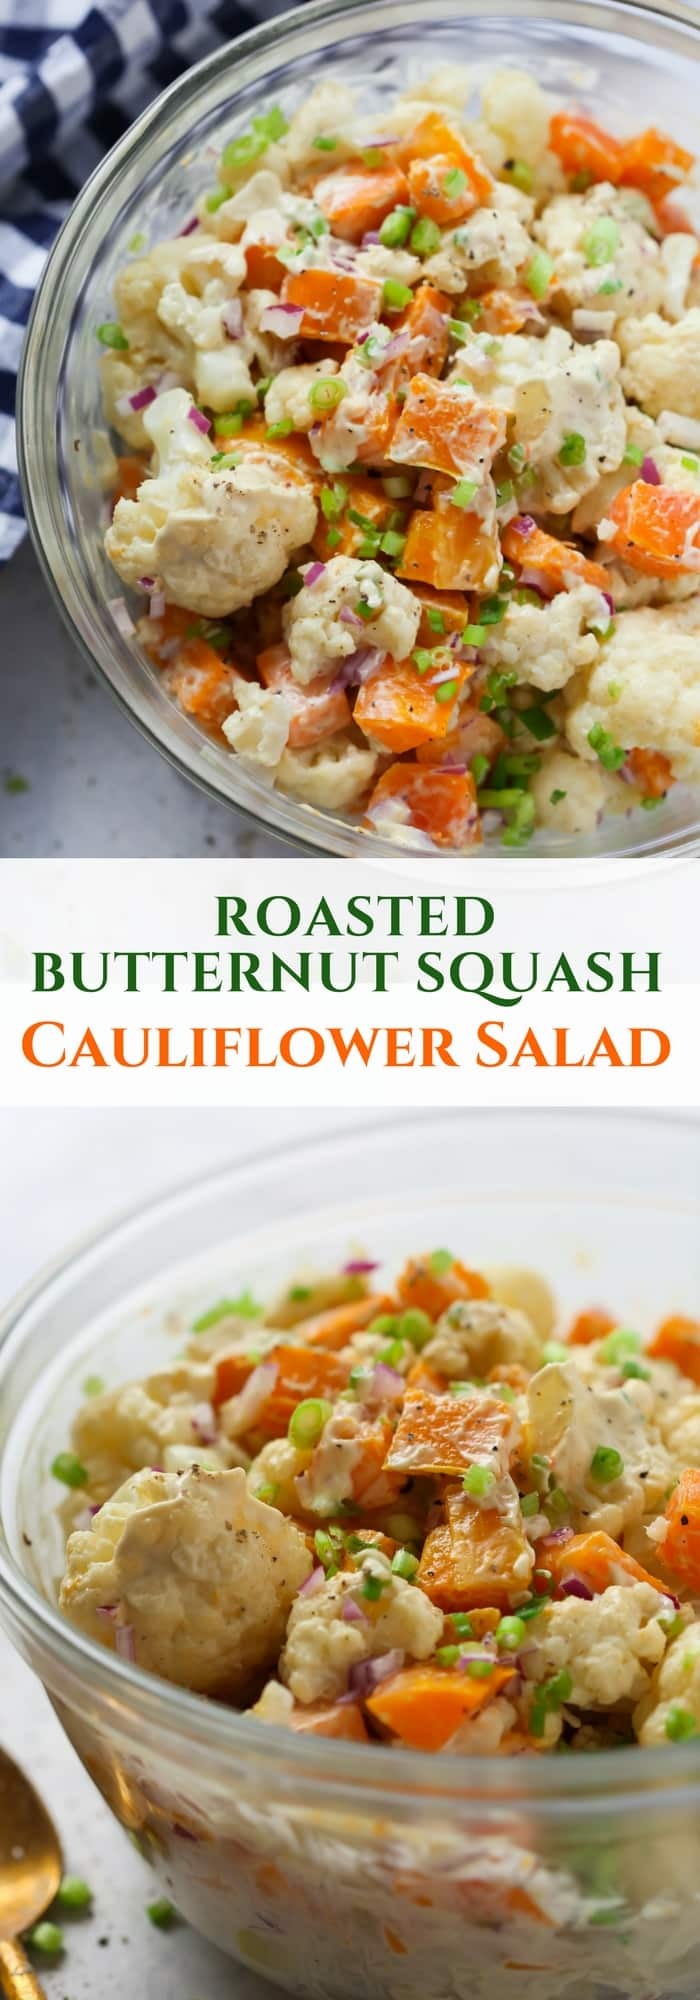 You'll love this Roasted Butternut Squash Cauliflower Salad for fall. It's tossed with an easy and very delicious vegan dressing.